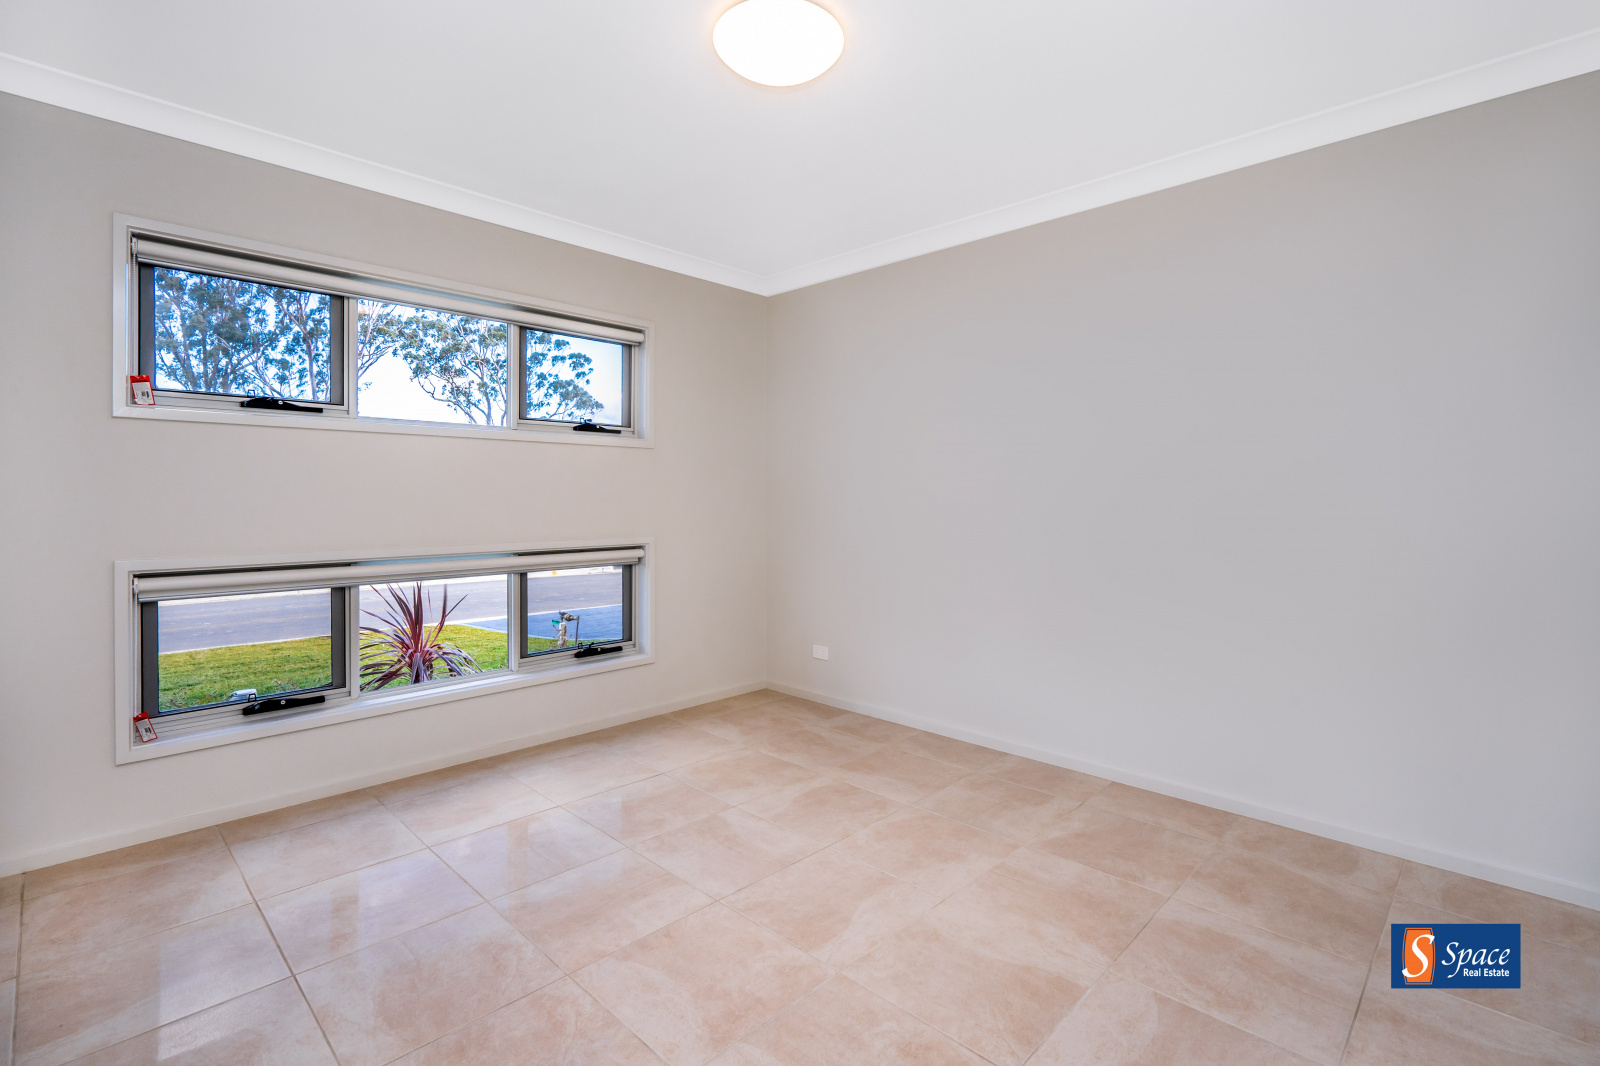 15 Brooking Avenue,Elderslie,NSW,3 Bedrooms Bedrooms,2 BathroomsBathrooms,House,Brooking Avenue,1557